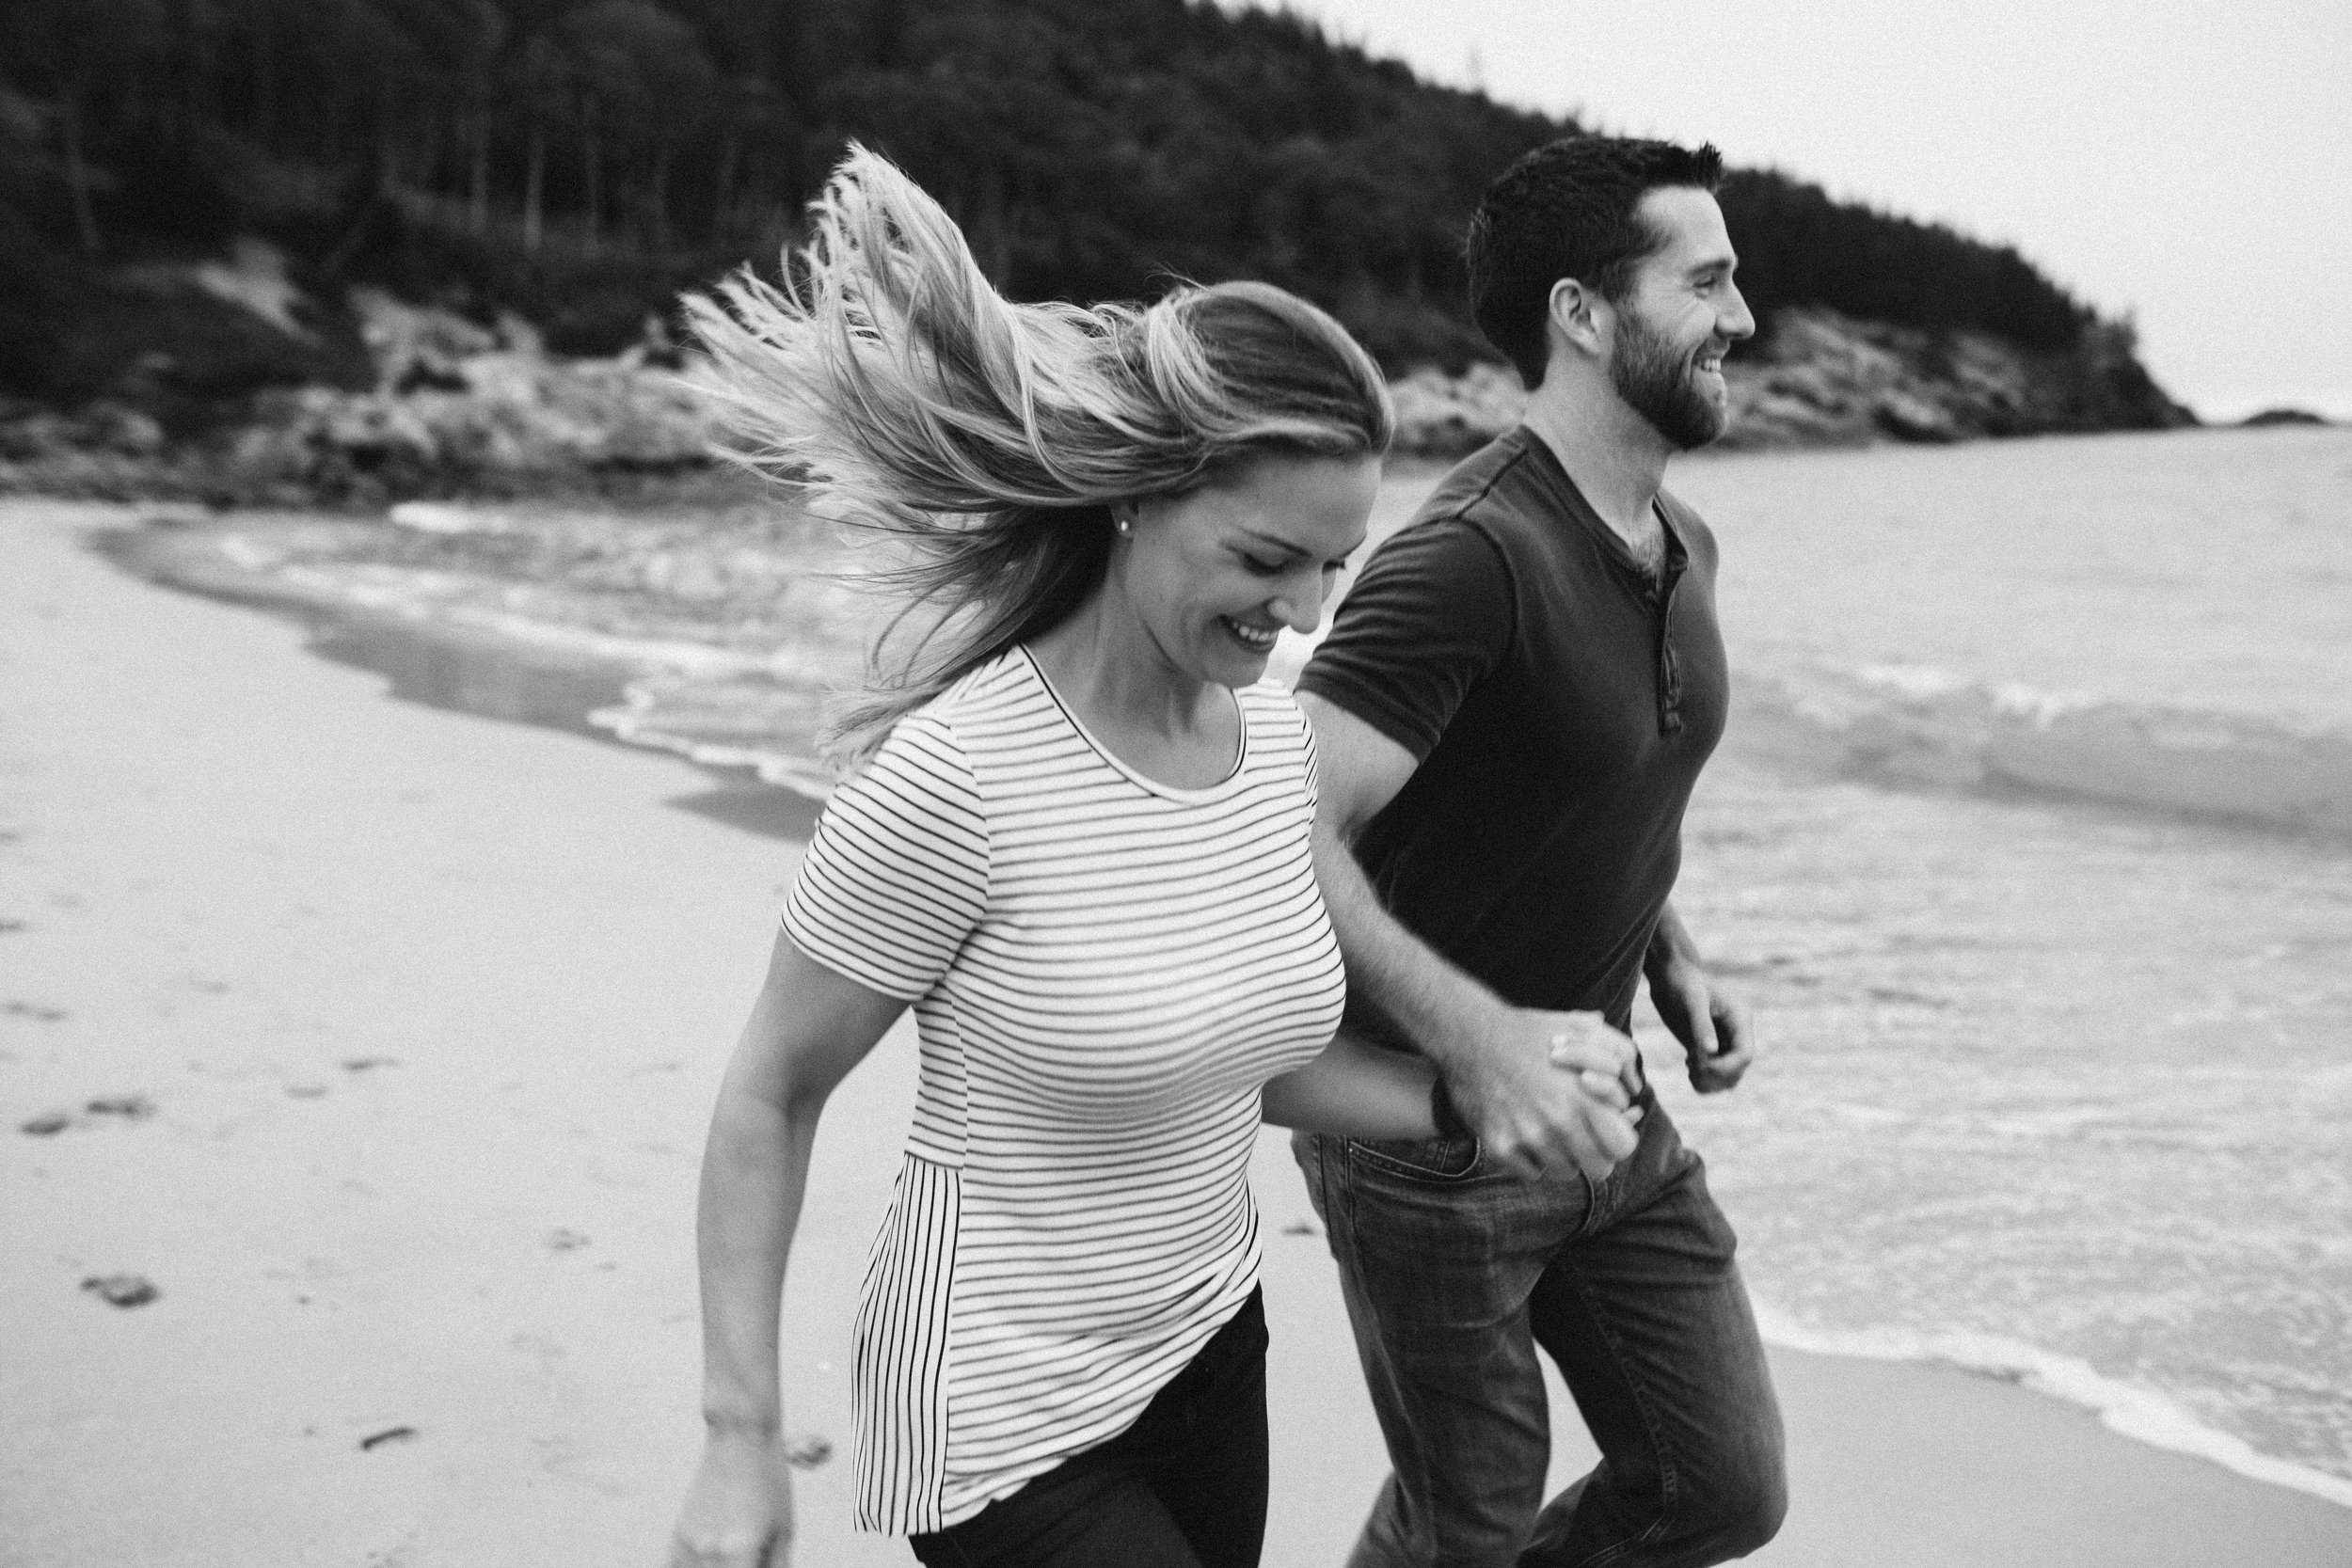 nicole-daacke-photography-acadia-national-park-adventurous-engagement-session-photos-otter-cliffs-forests-coastline-sand-beach-adventure-session-bar-harbor-mt-desert-island-elopement-fall-bass-harbor-lighthouse-wedding-maine-landscape-photographer-1.jpg